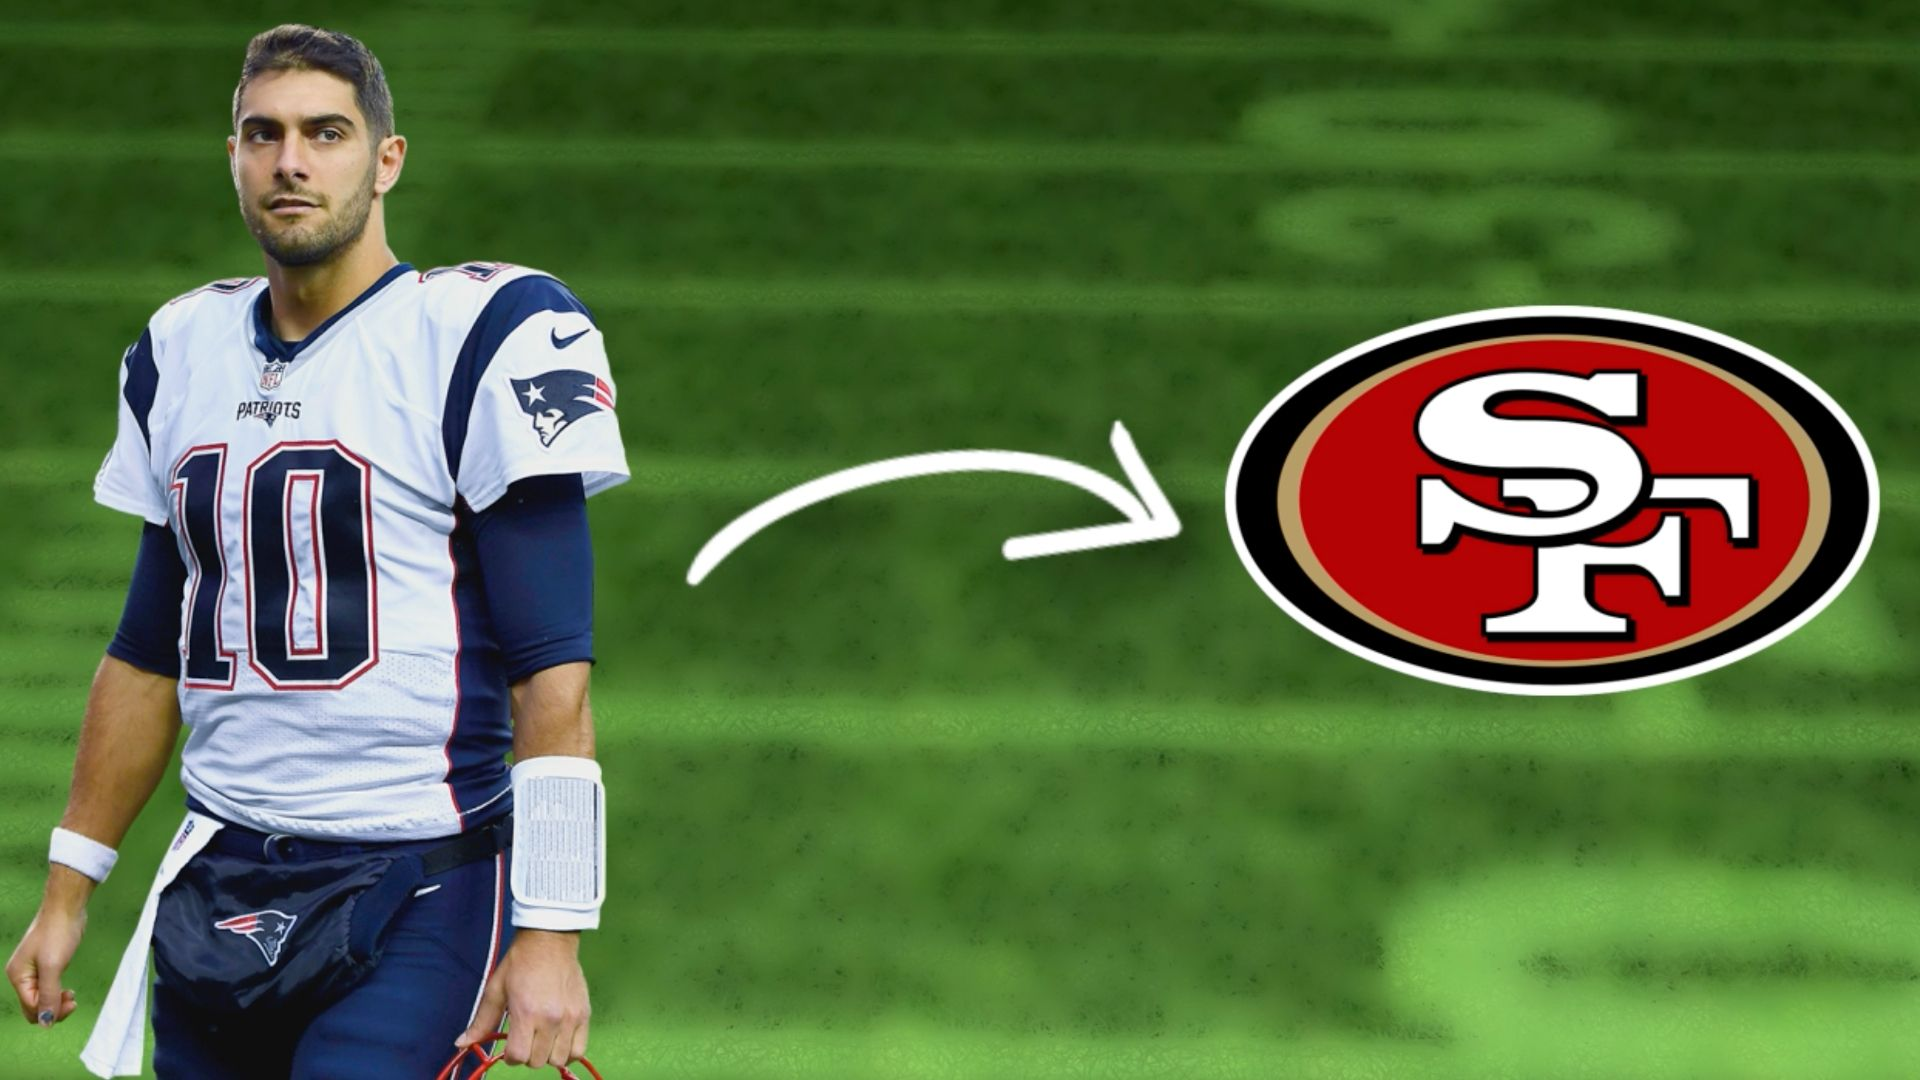 NFL Trading - Simple Strategy To Copy [Guest Post]